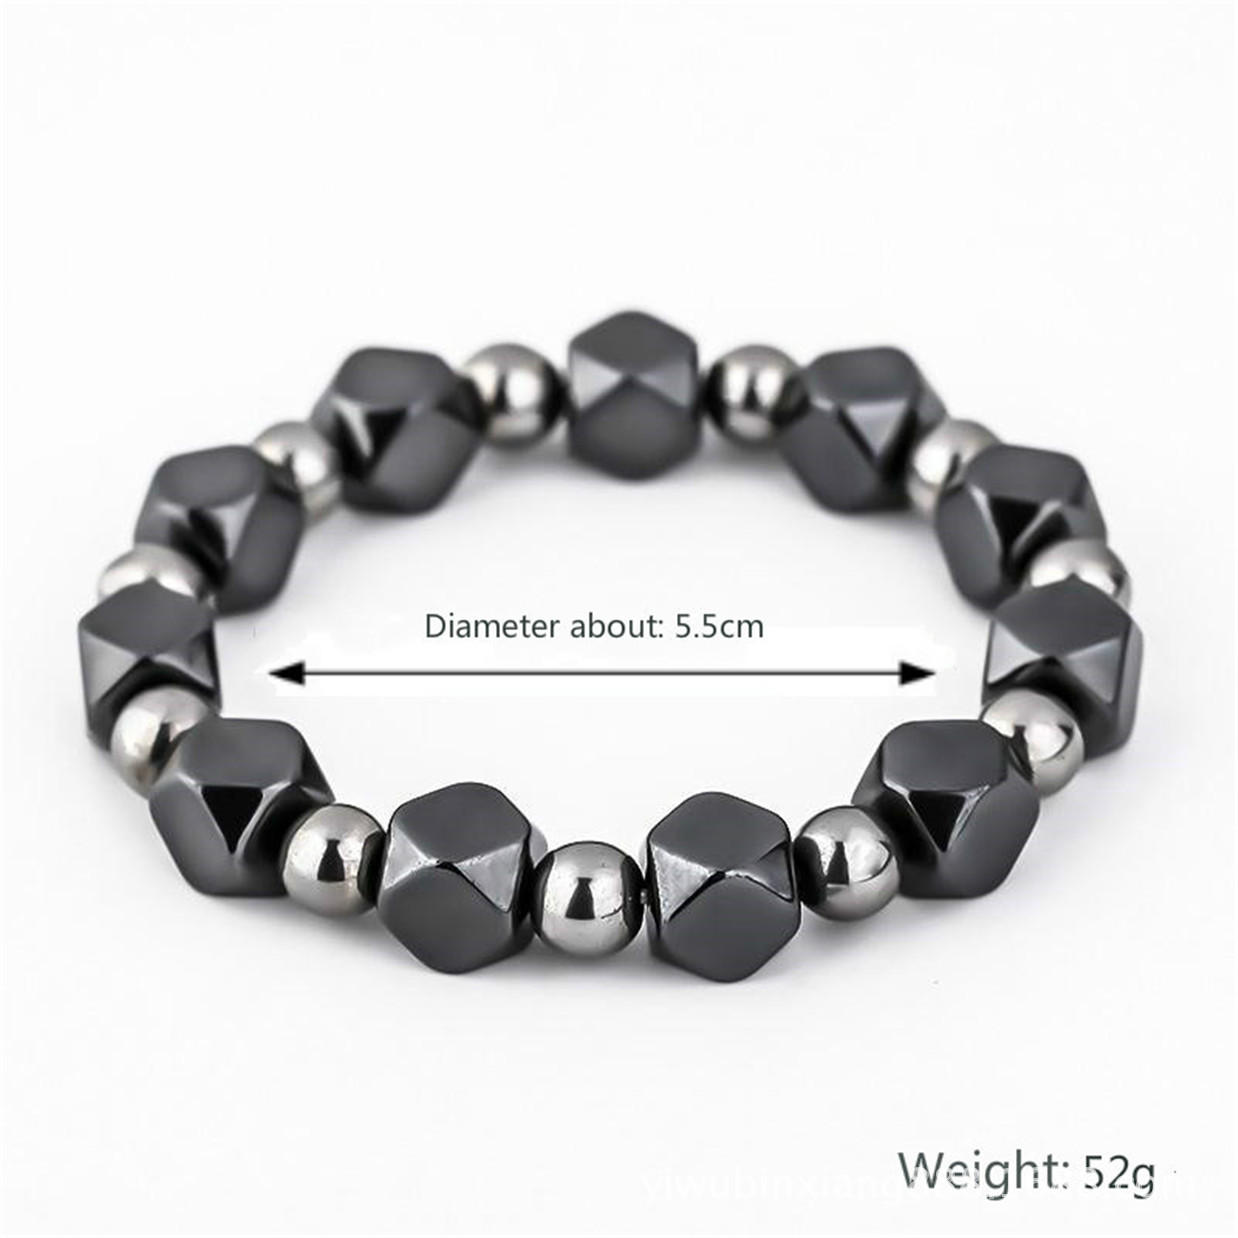 Adjustable Weight Loss Round Black Stone Magnetic Therapy Bracelet Health Care Luxury Slimming Product Magnetic Anion Bracelet